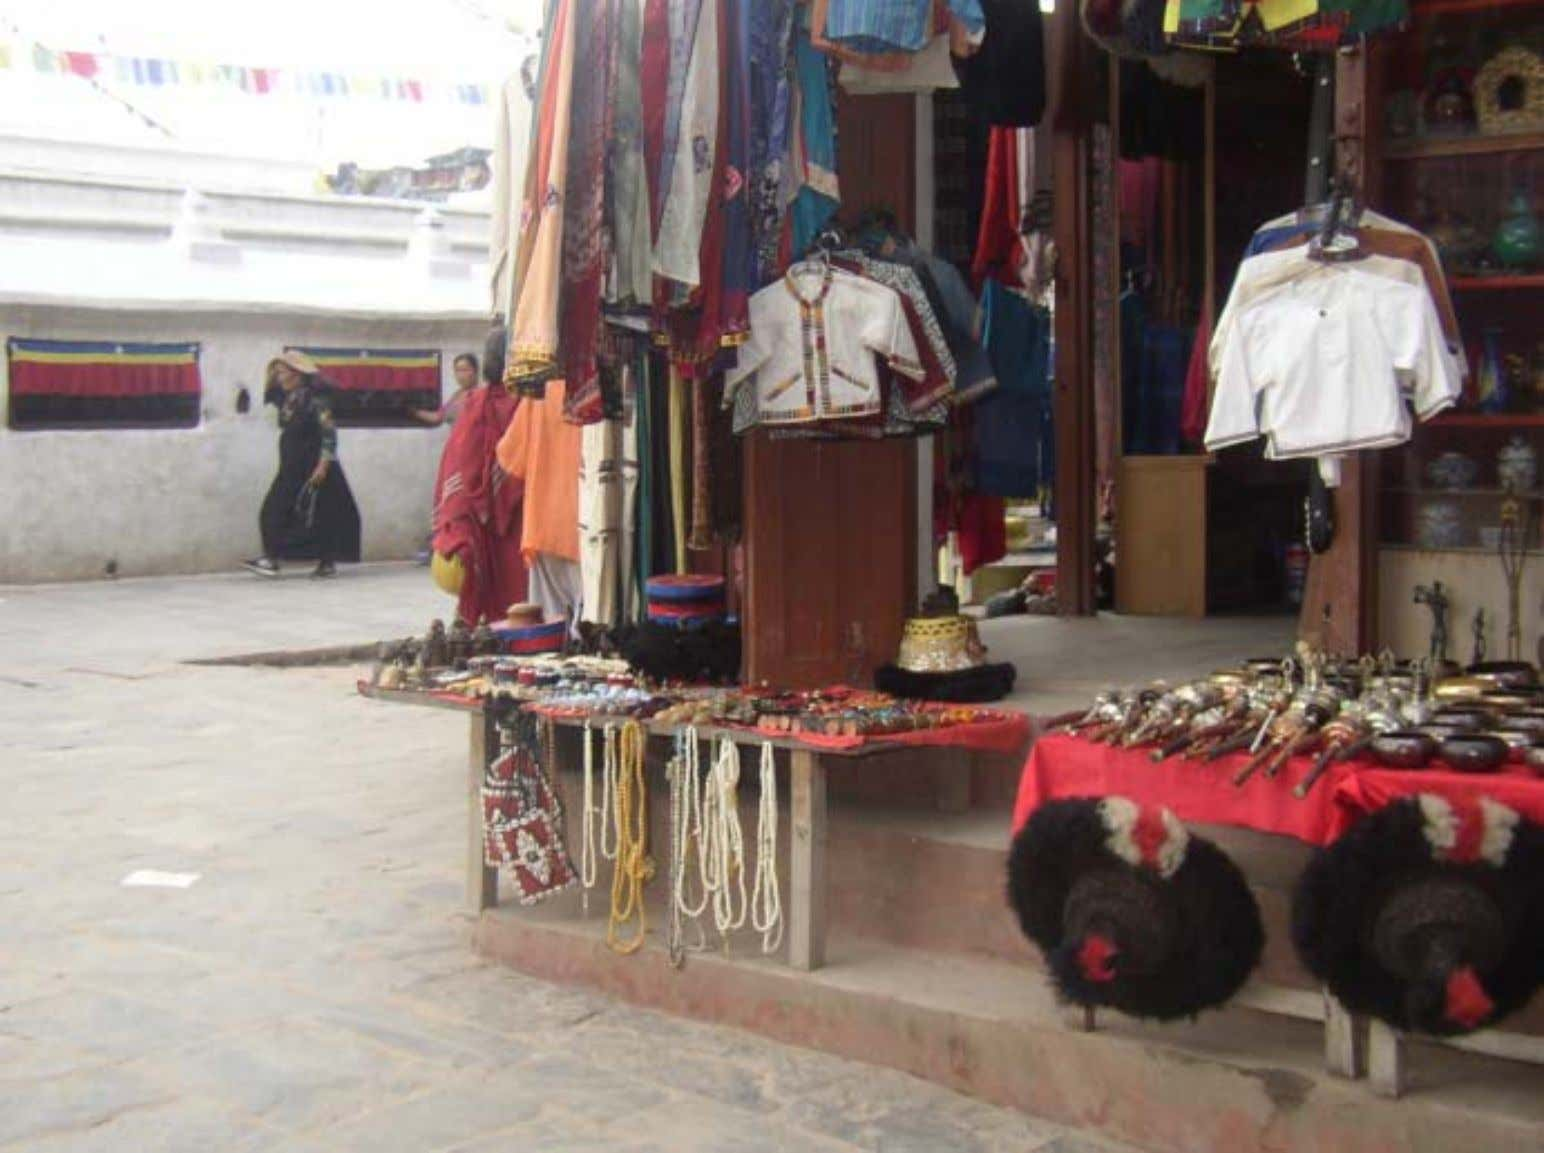 A typical Tibetan shop on the side of the entranceway.